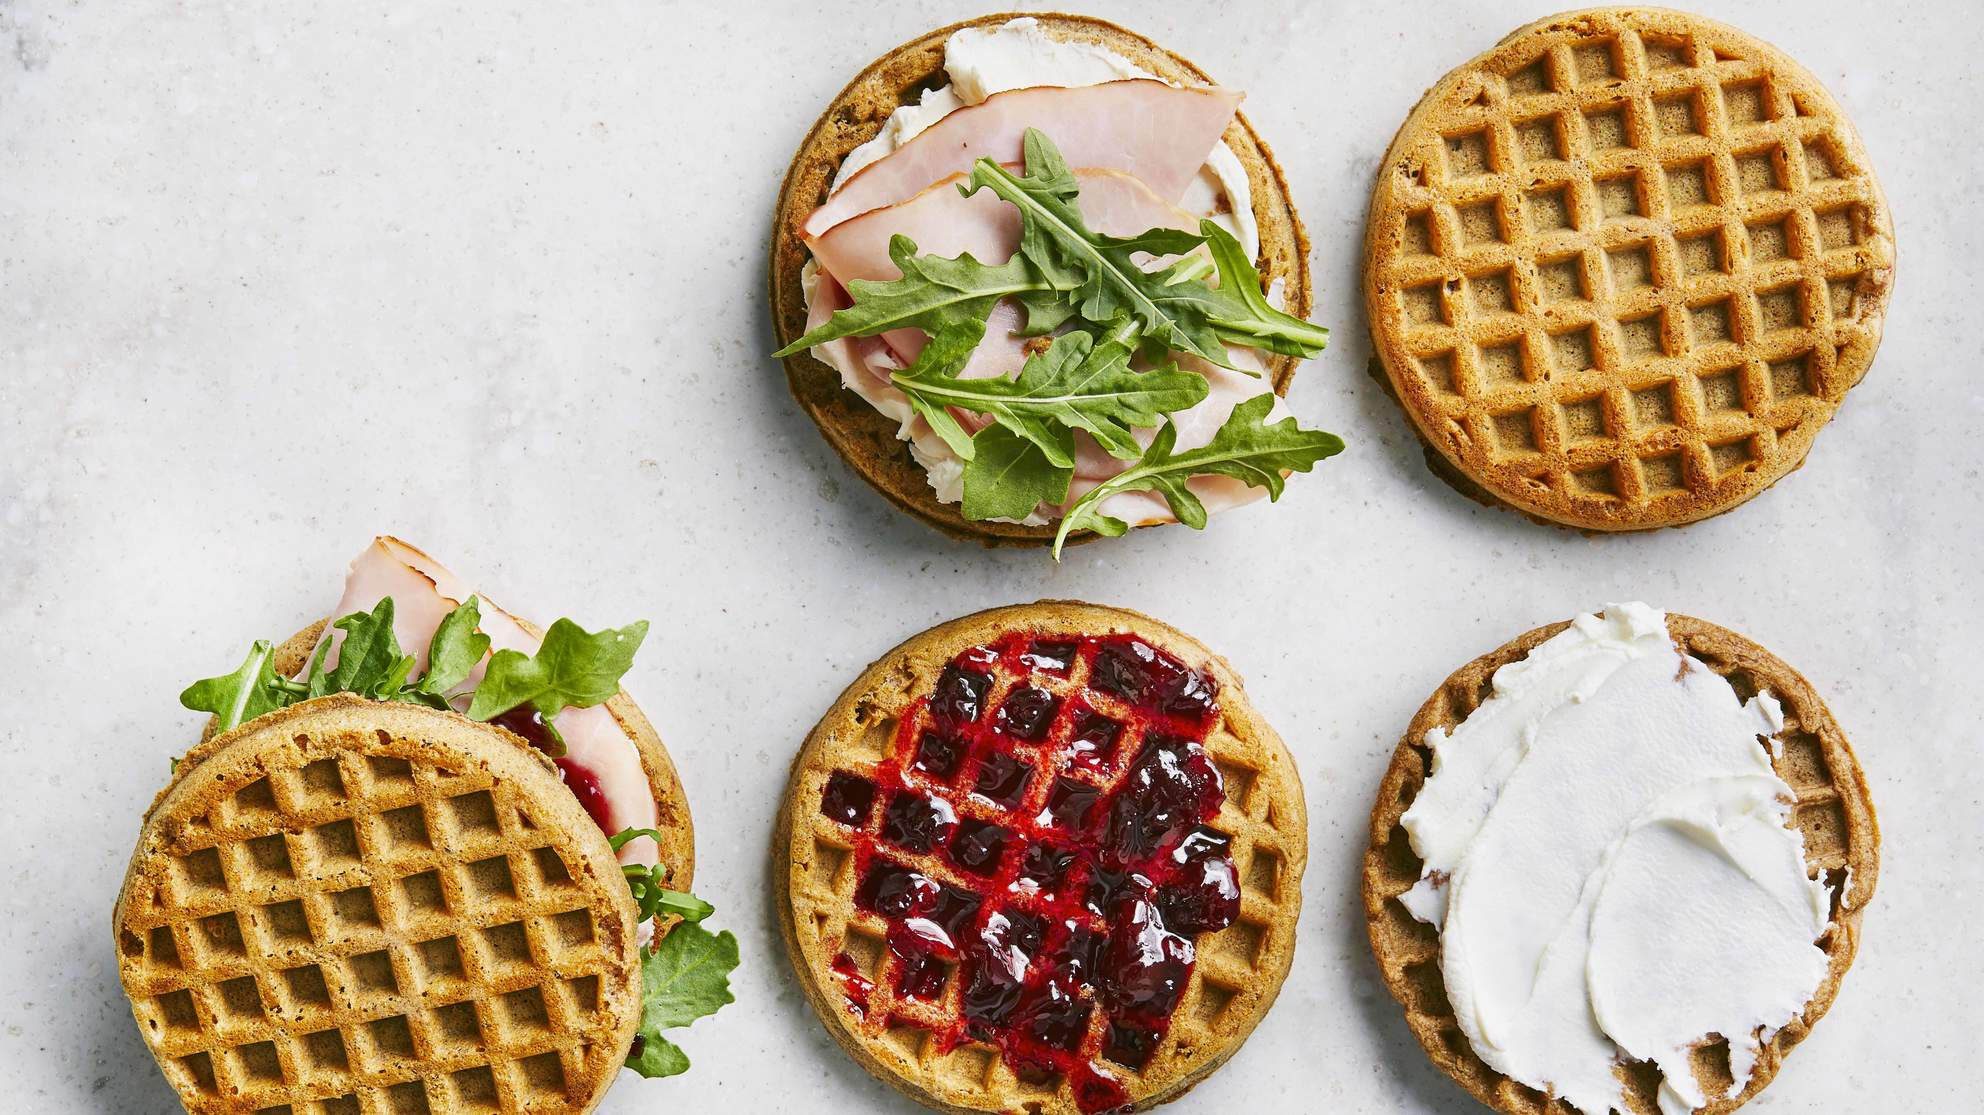 goat-cheese-waffle-sandwiches-health-mag-septermber-2019